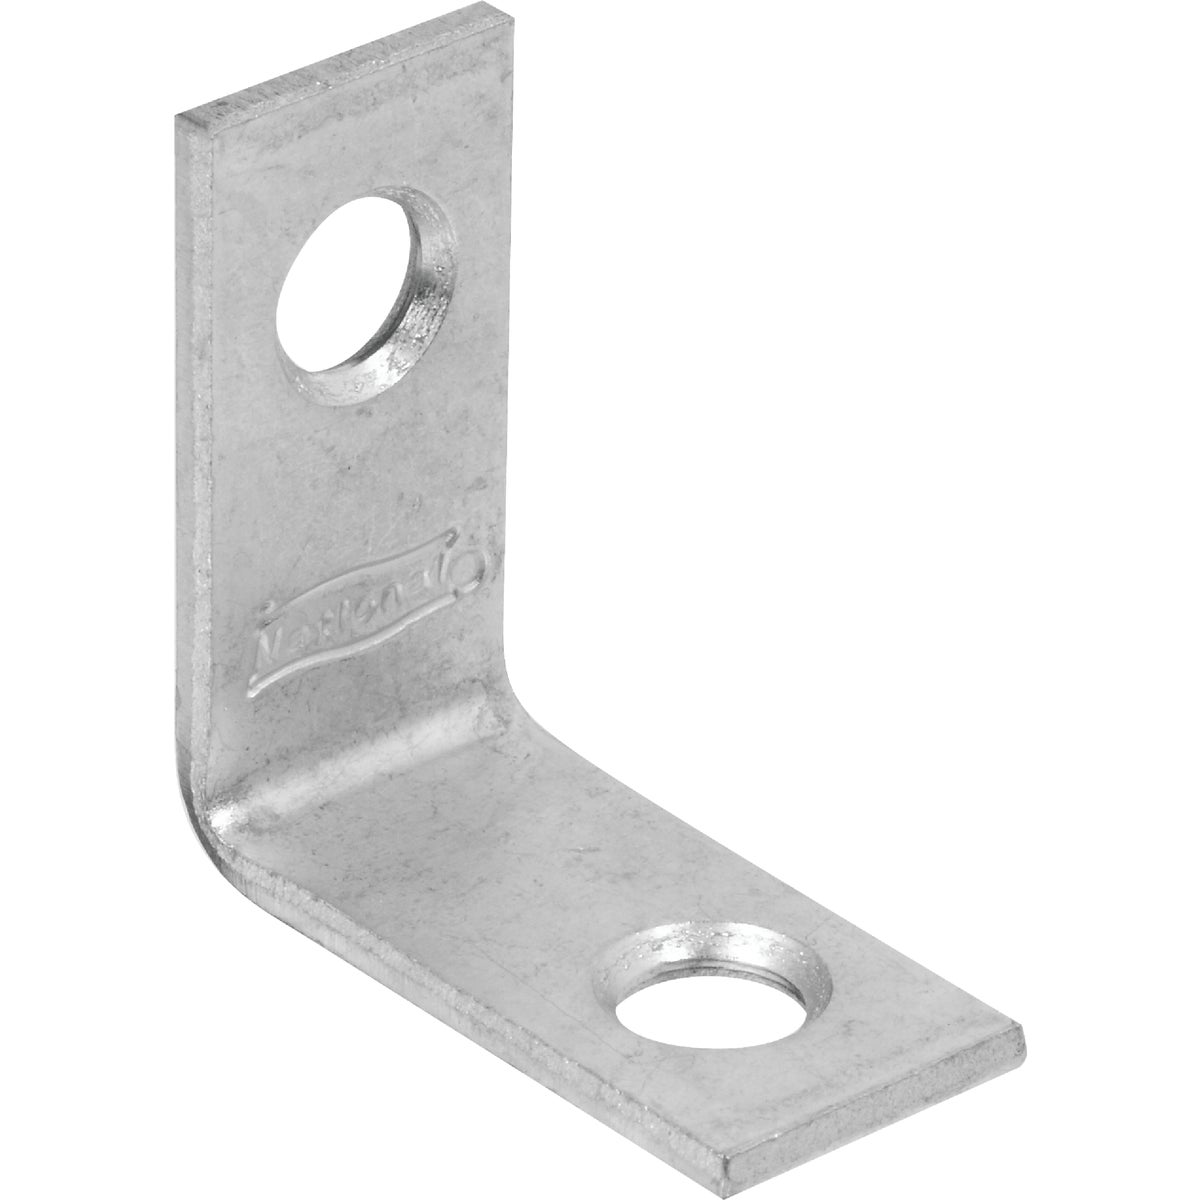 1X1/2 ZINC CORNER BRACE - N266270 by National Mfg Co